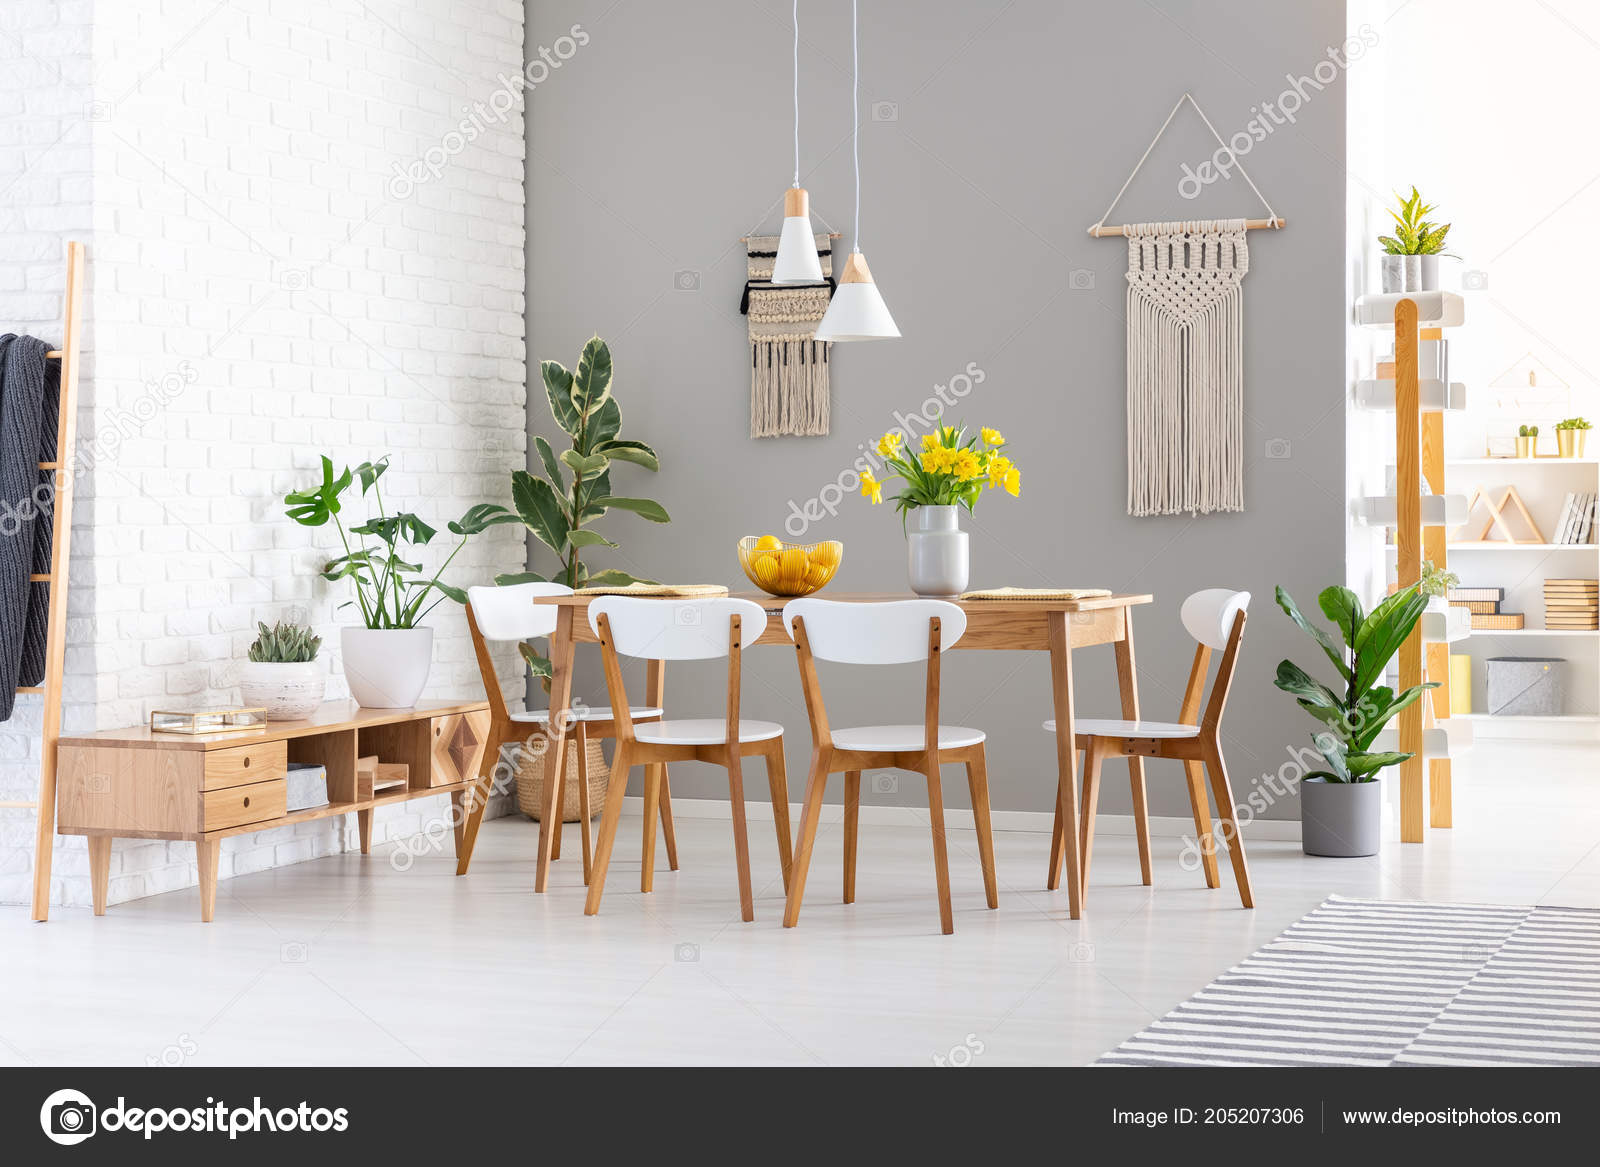 White Chairs Wooden Table Yellow Flowers Dining Room Interior Plants Stock Photo Image By C Photographee Eu 205207306